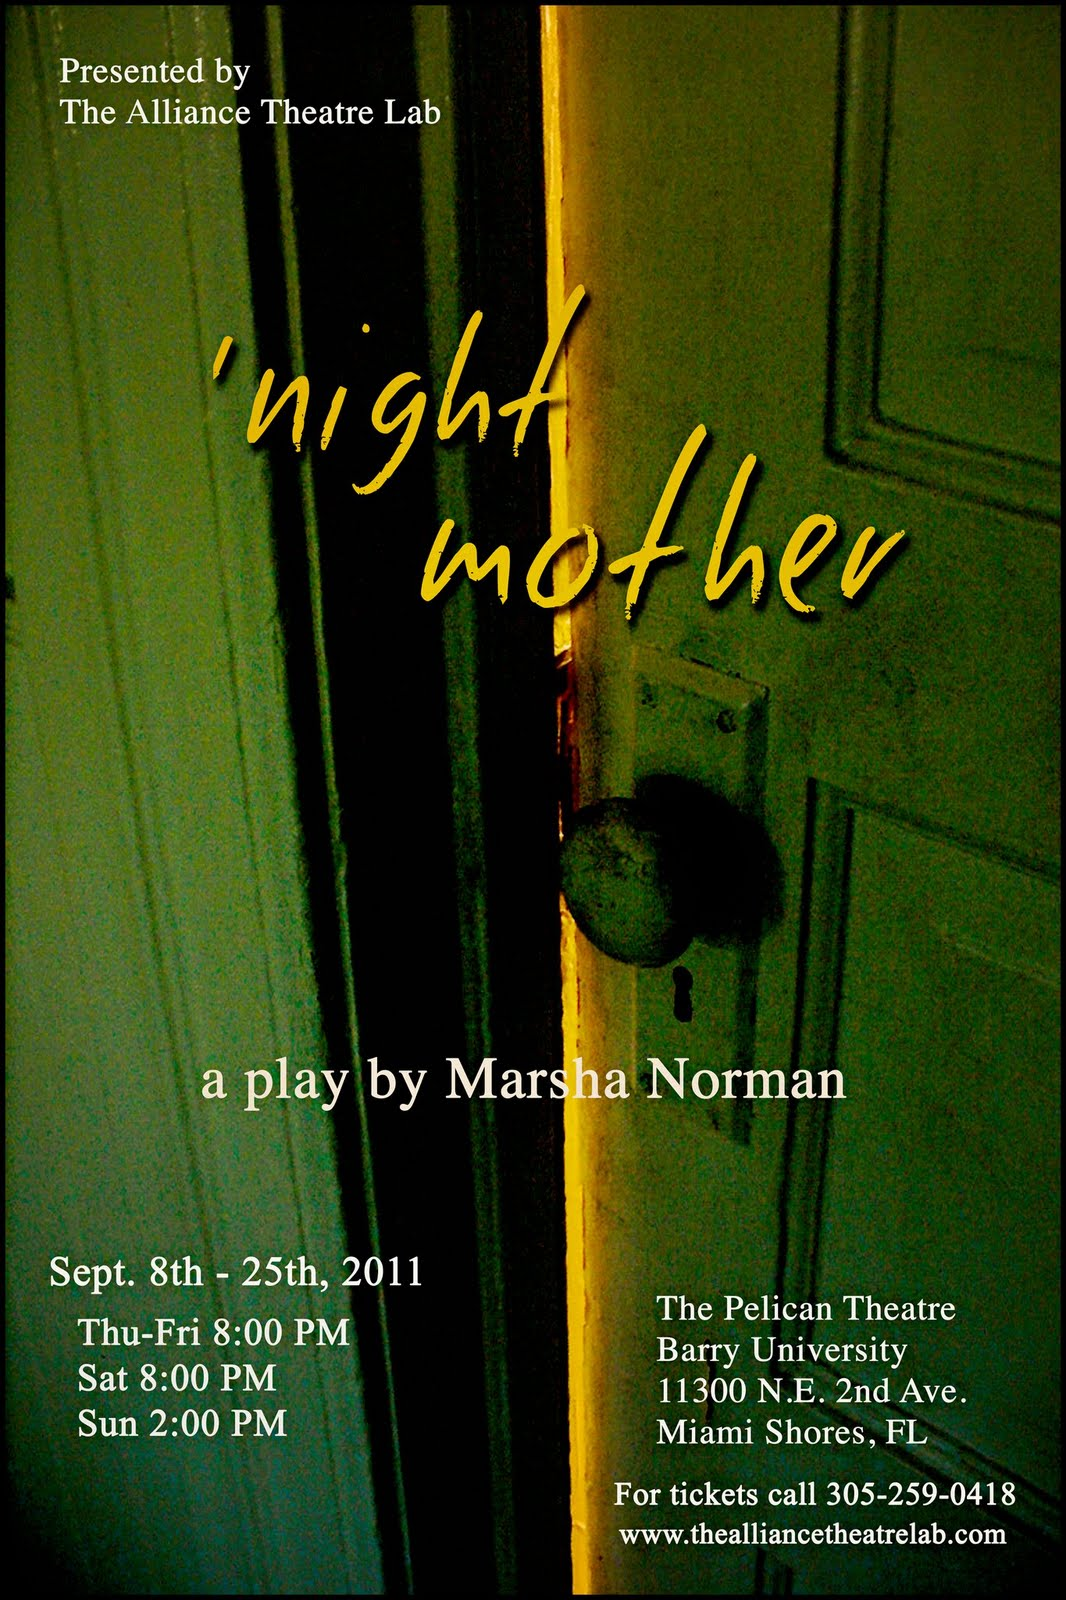 an examination of the play night mother by marsha norman